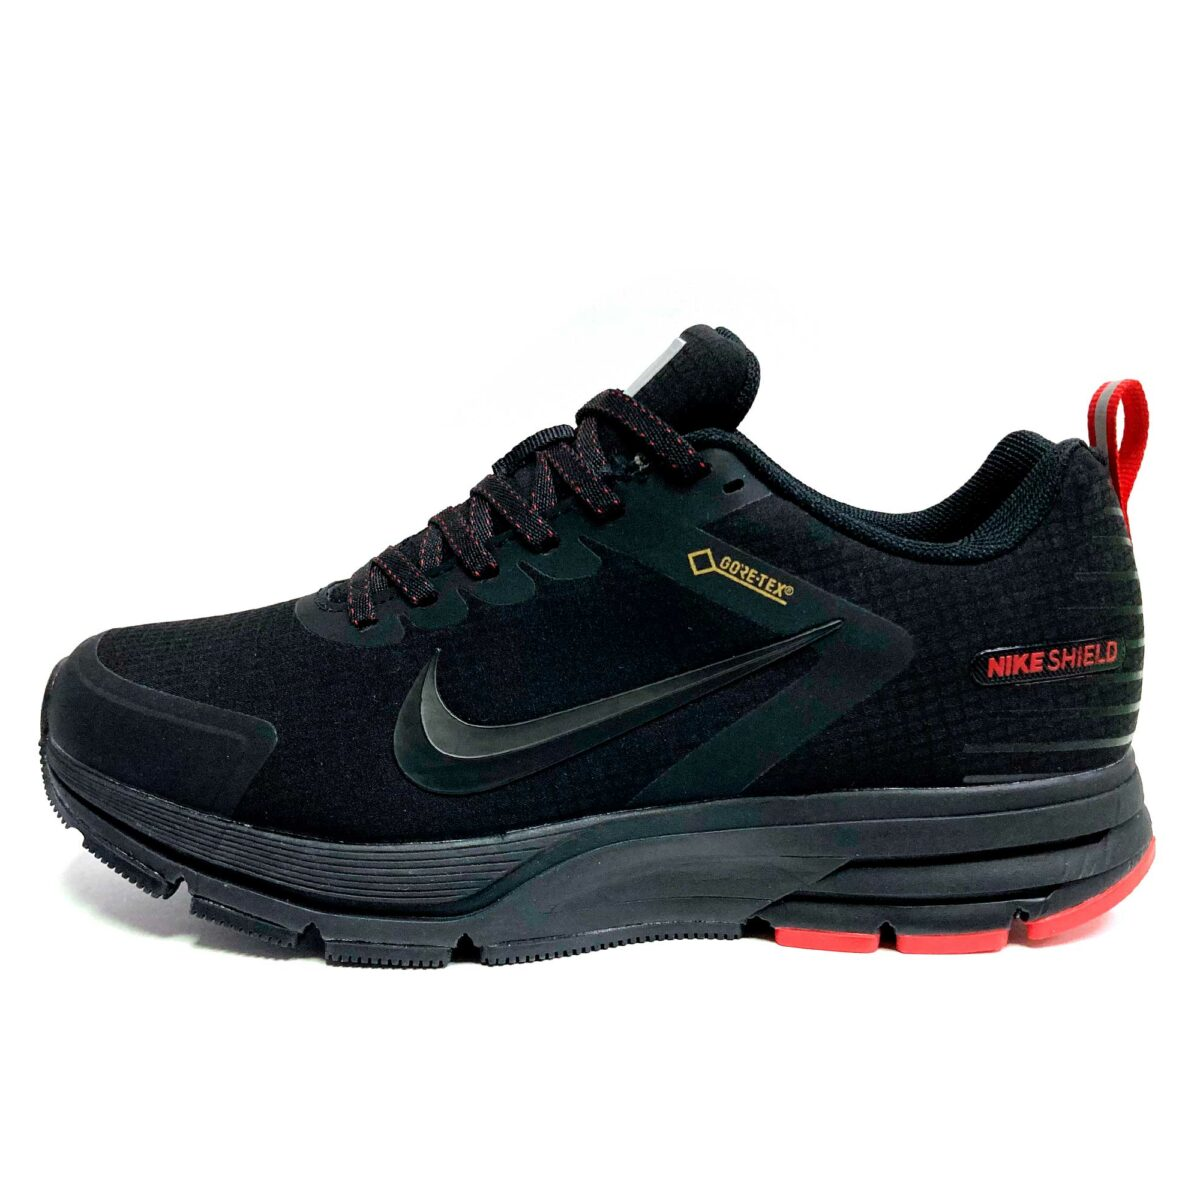 nike pegasus shield black red купить